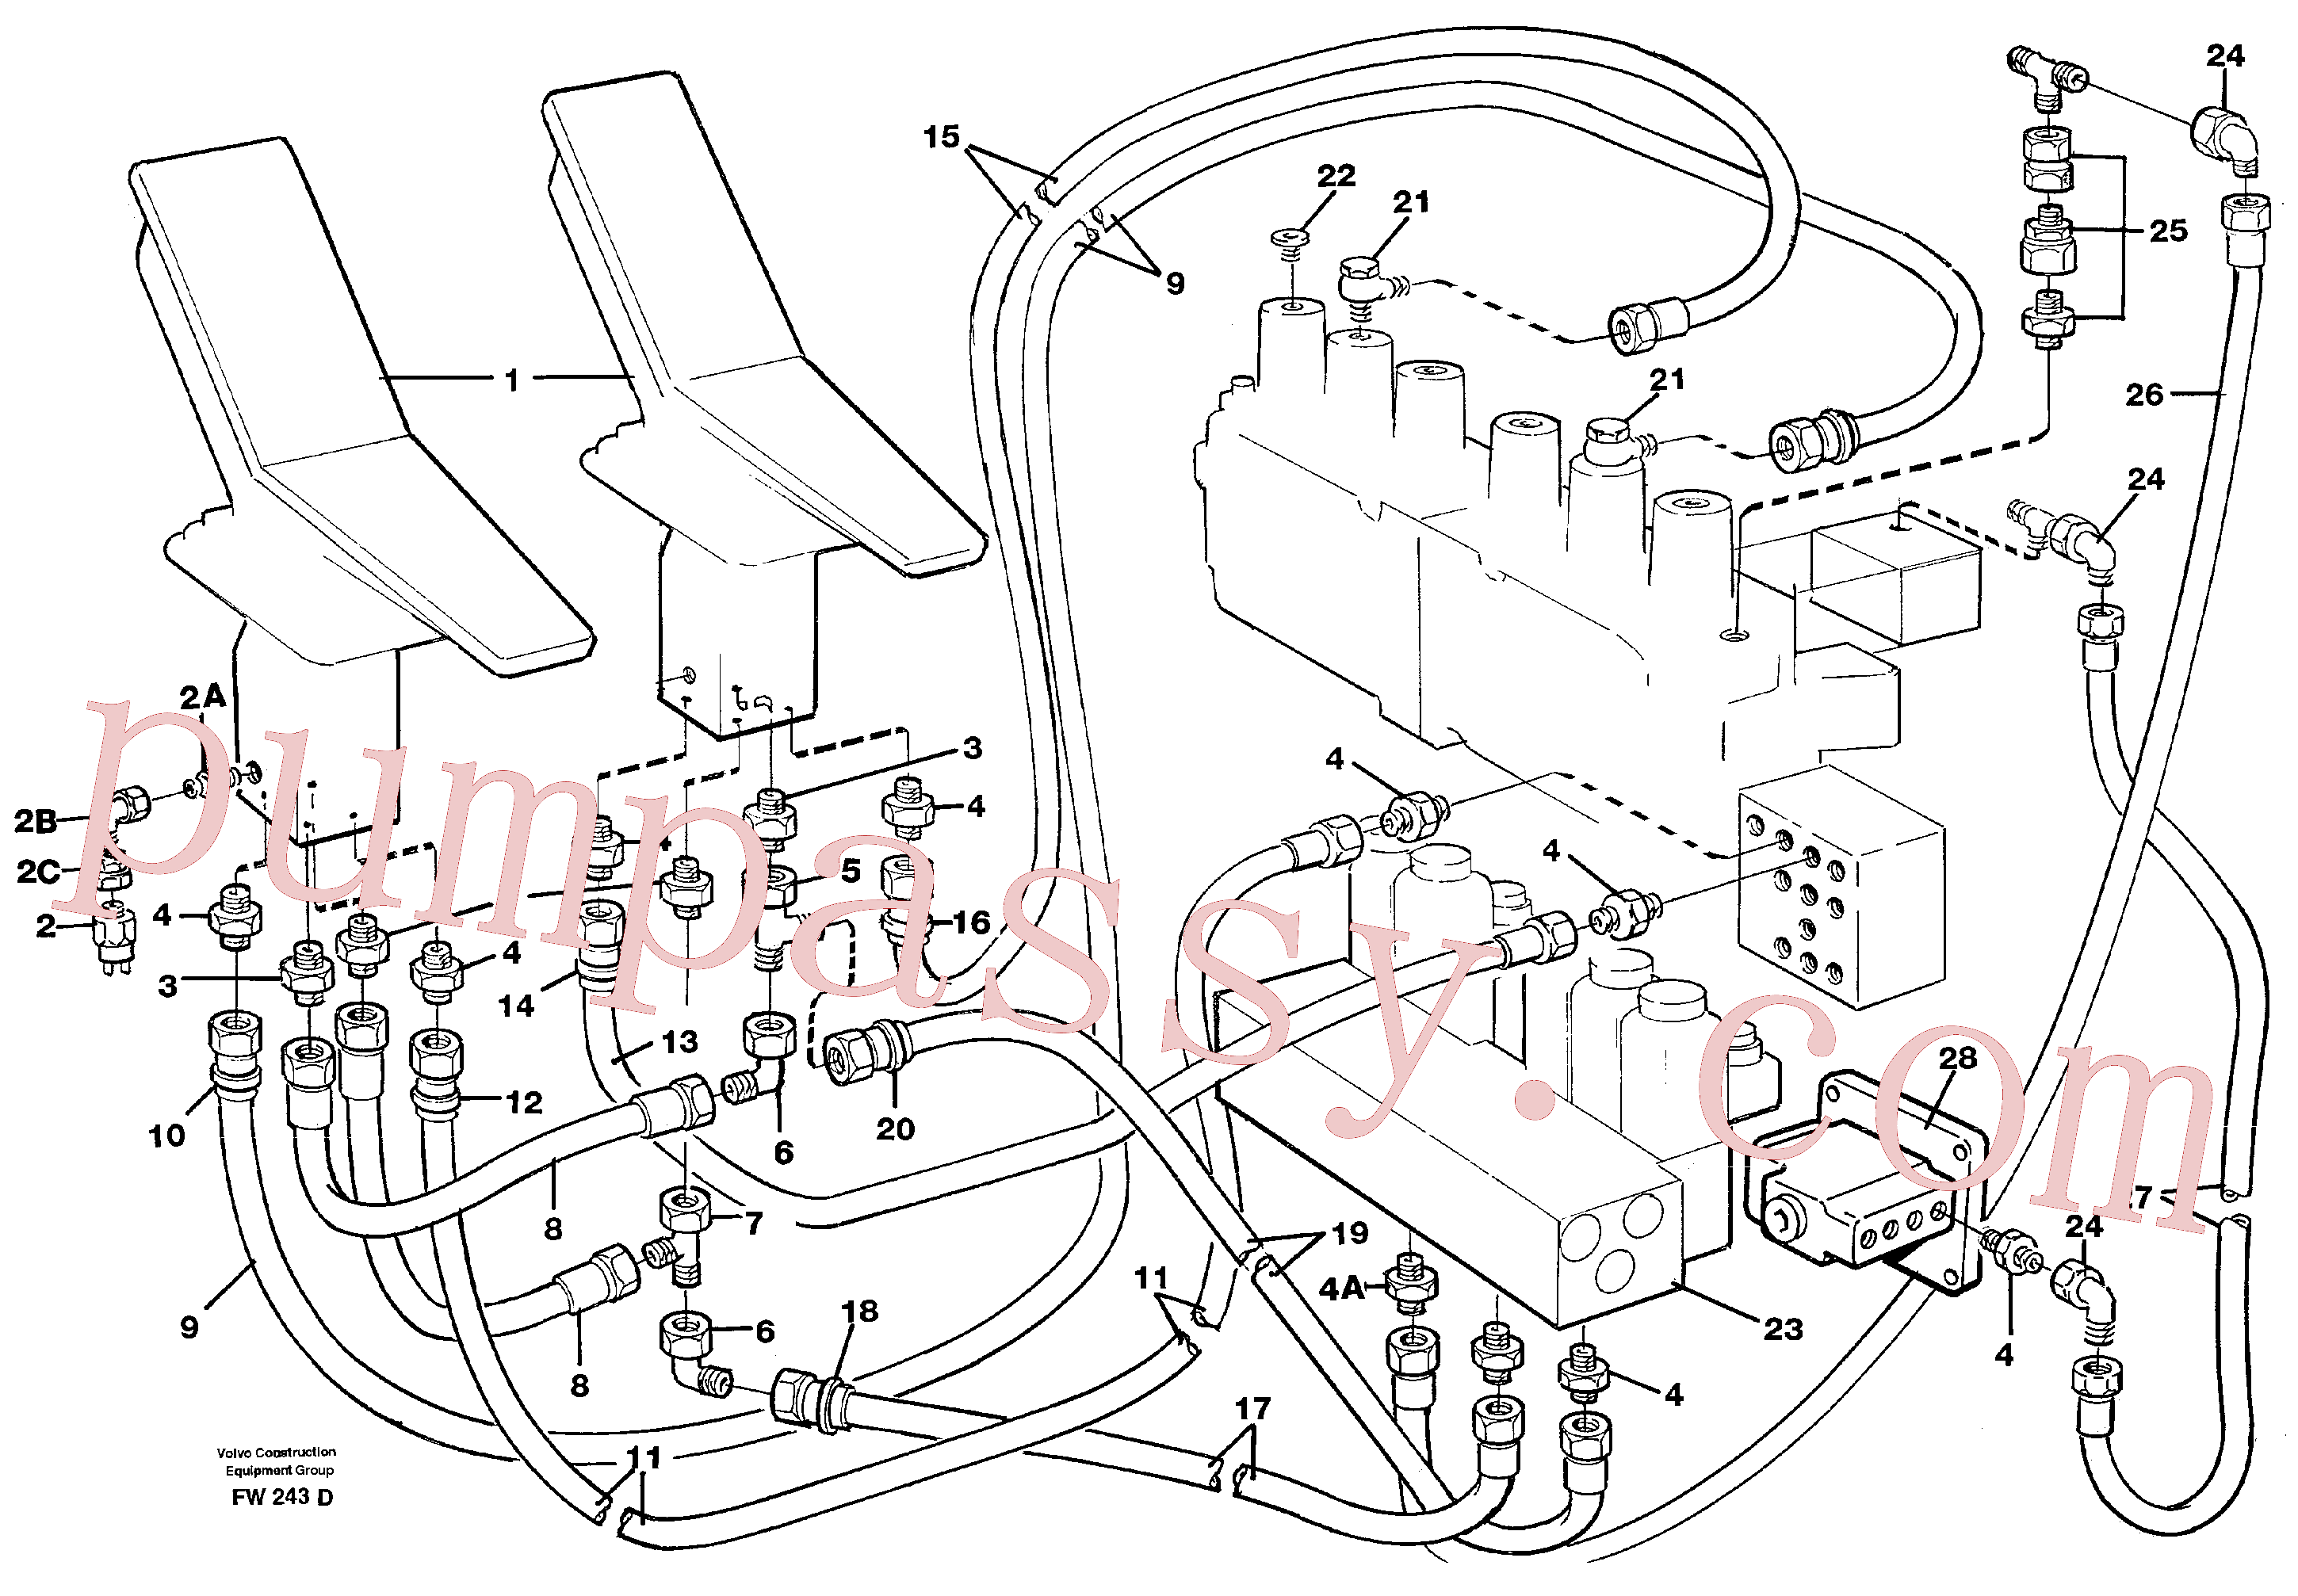 VOE14263873 for Volvo Servohydraulik, travel(FW243D assembly)